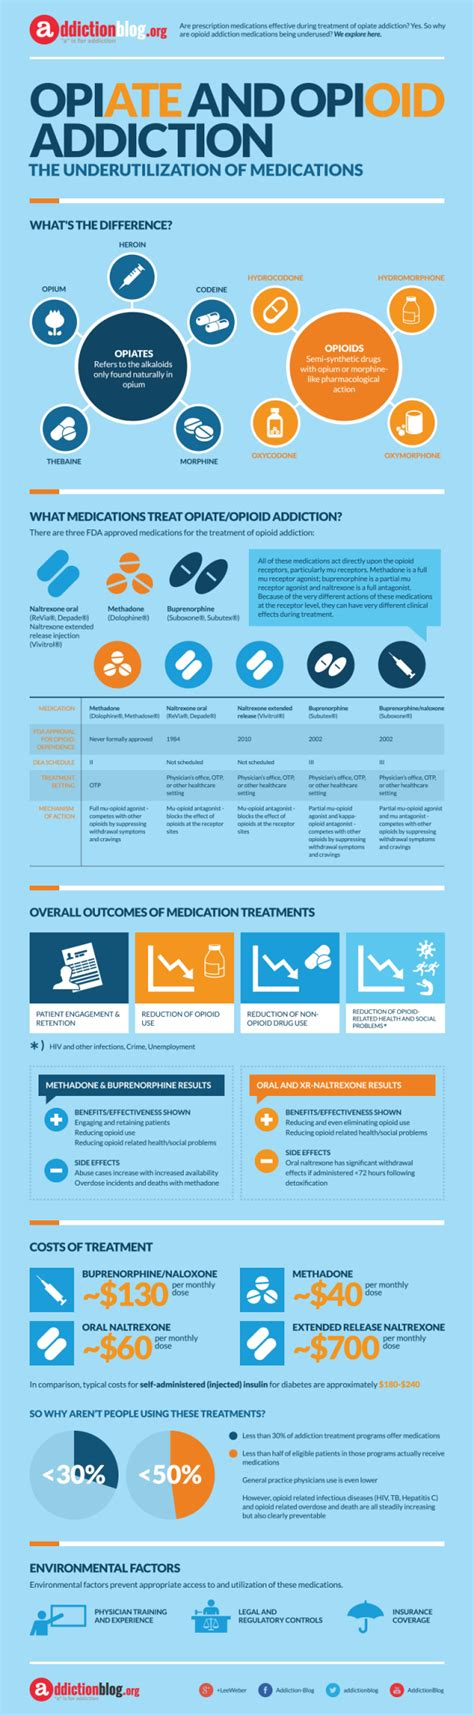 Best Way To Use Methadon To Detox Opiats by Medications For Opiate And Opioid Addiction Infographic